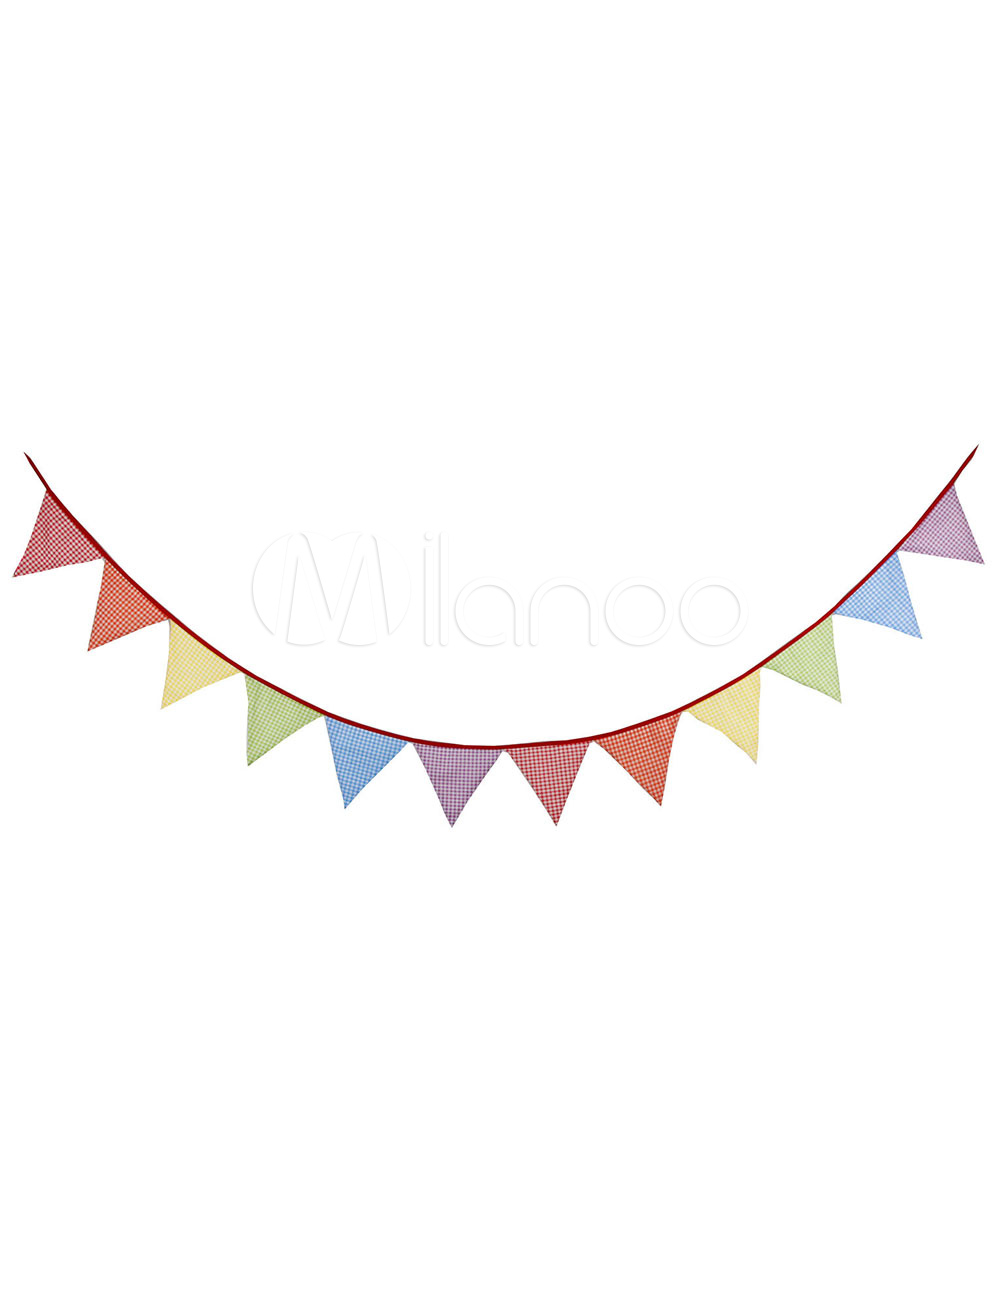 Wedding Banner Flags Clipart Red Printed Triangle Bunting Decorations.